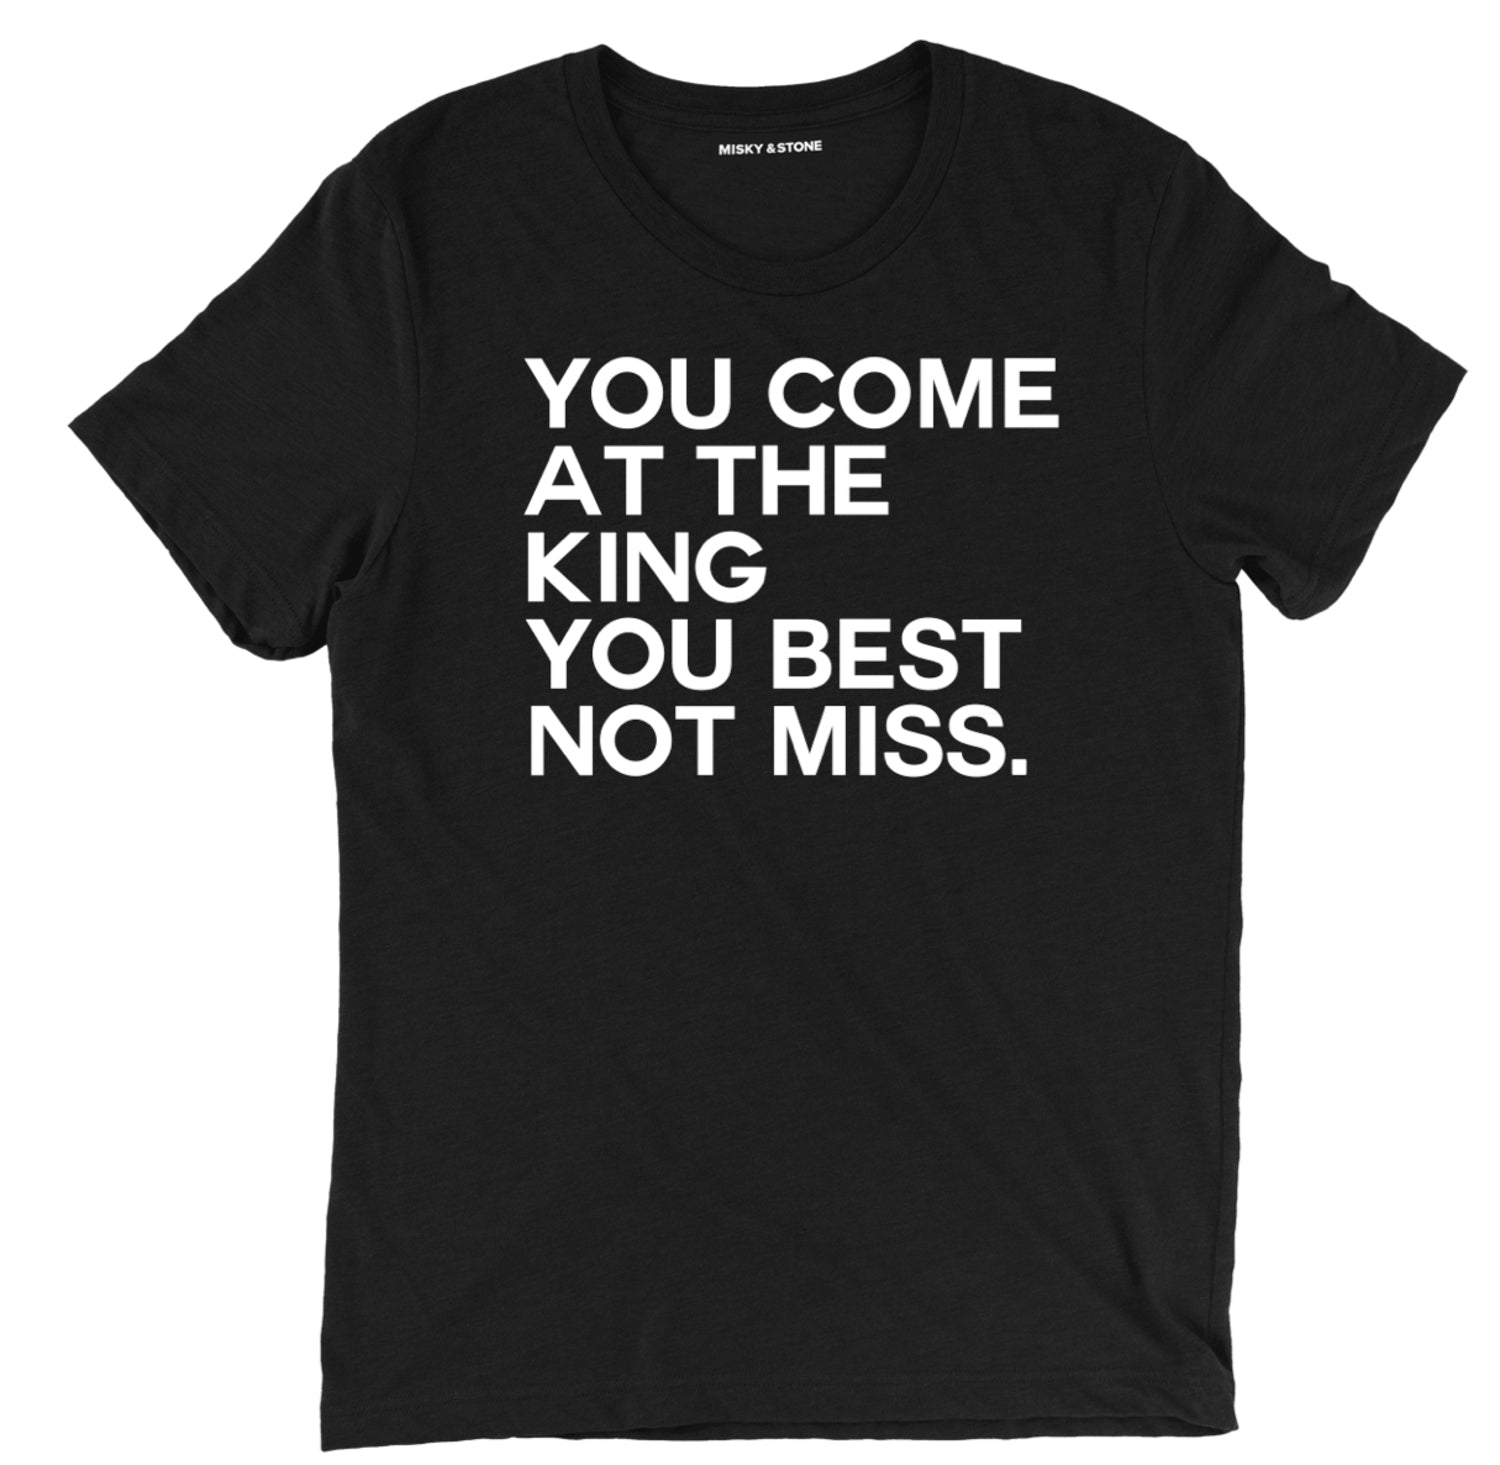 you come at the king tee, you best not miss t shirt, the wire tee, the wire come at the king tee